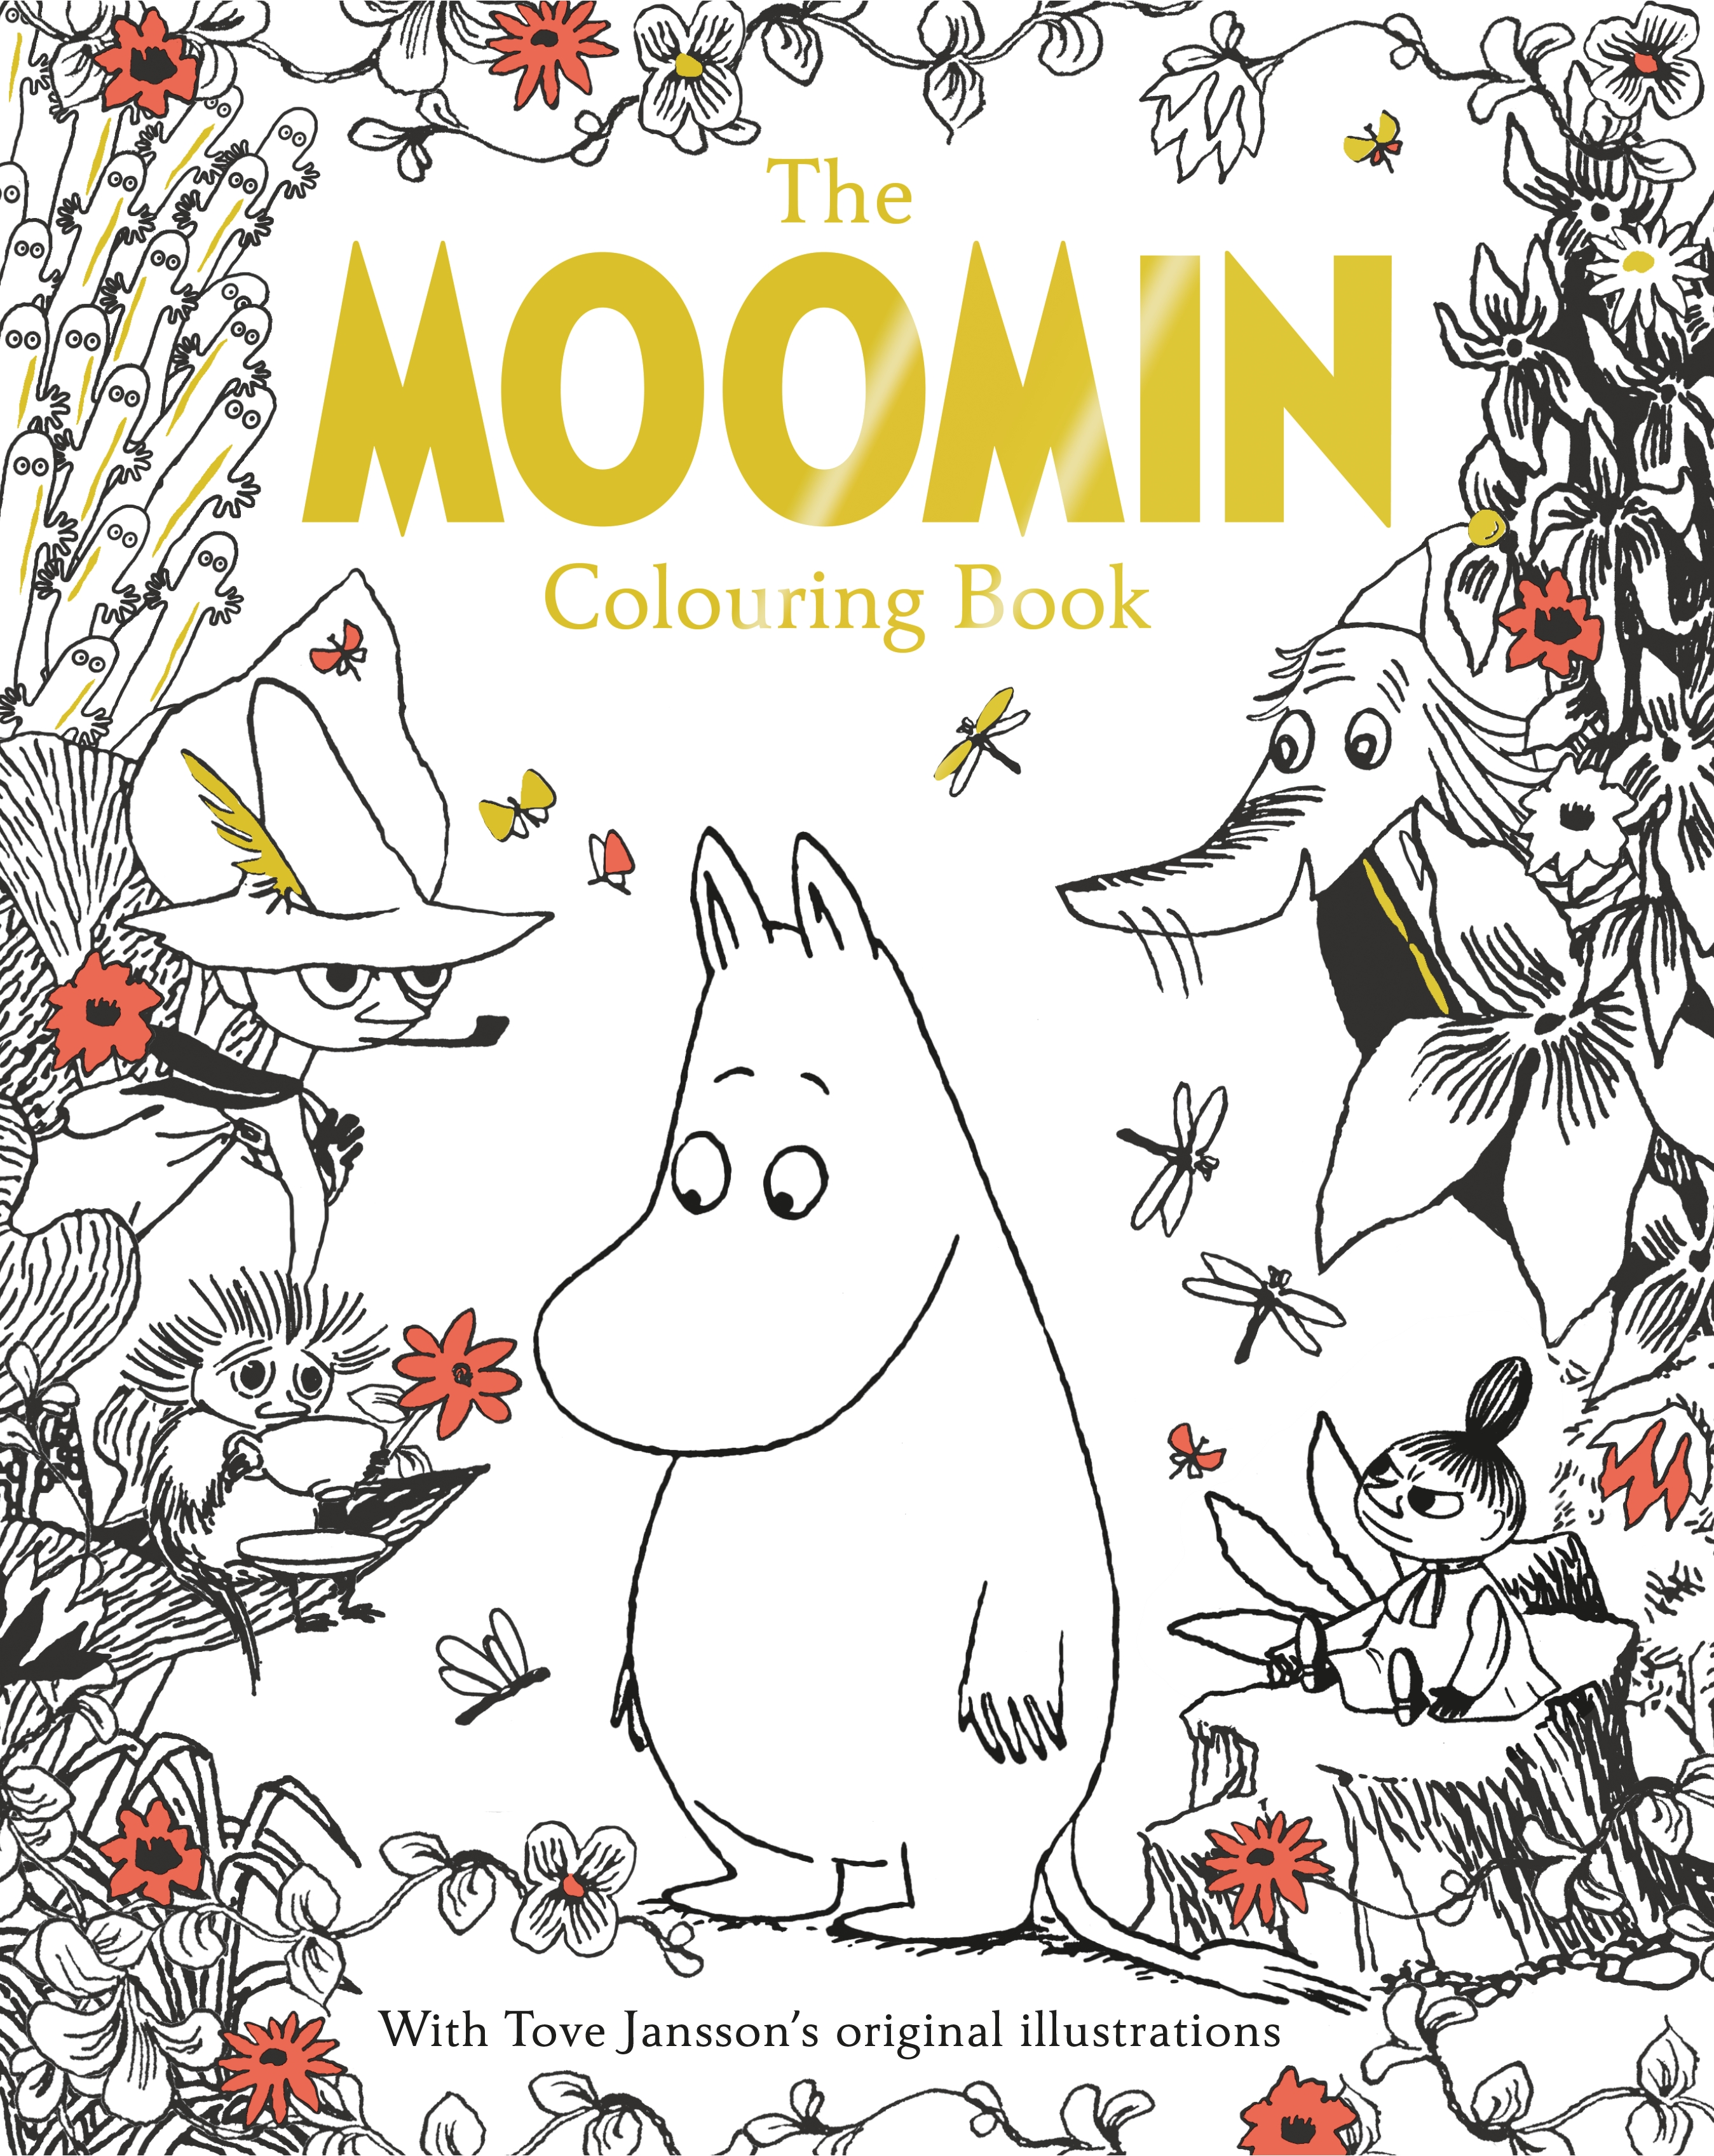 The Moomin Colouring Book by Macmillan Children's Books, ISBN: 9781509810024